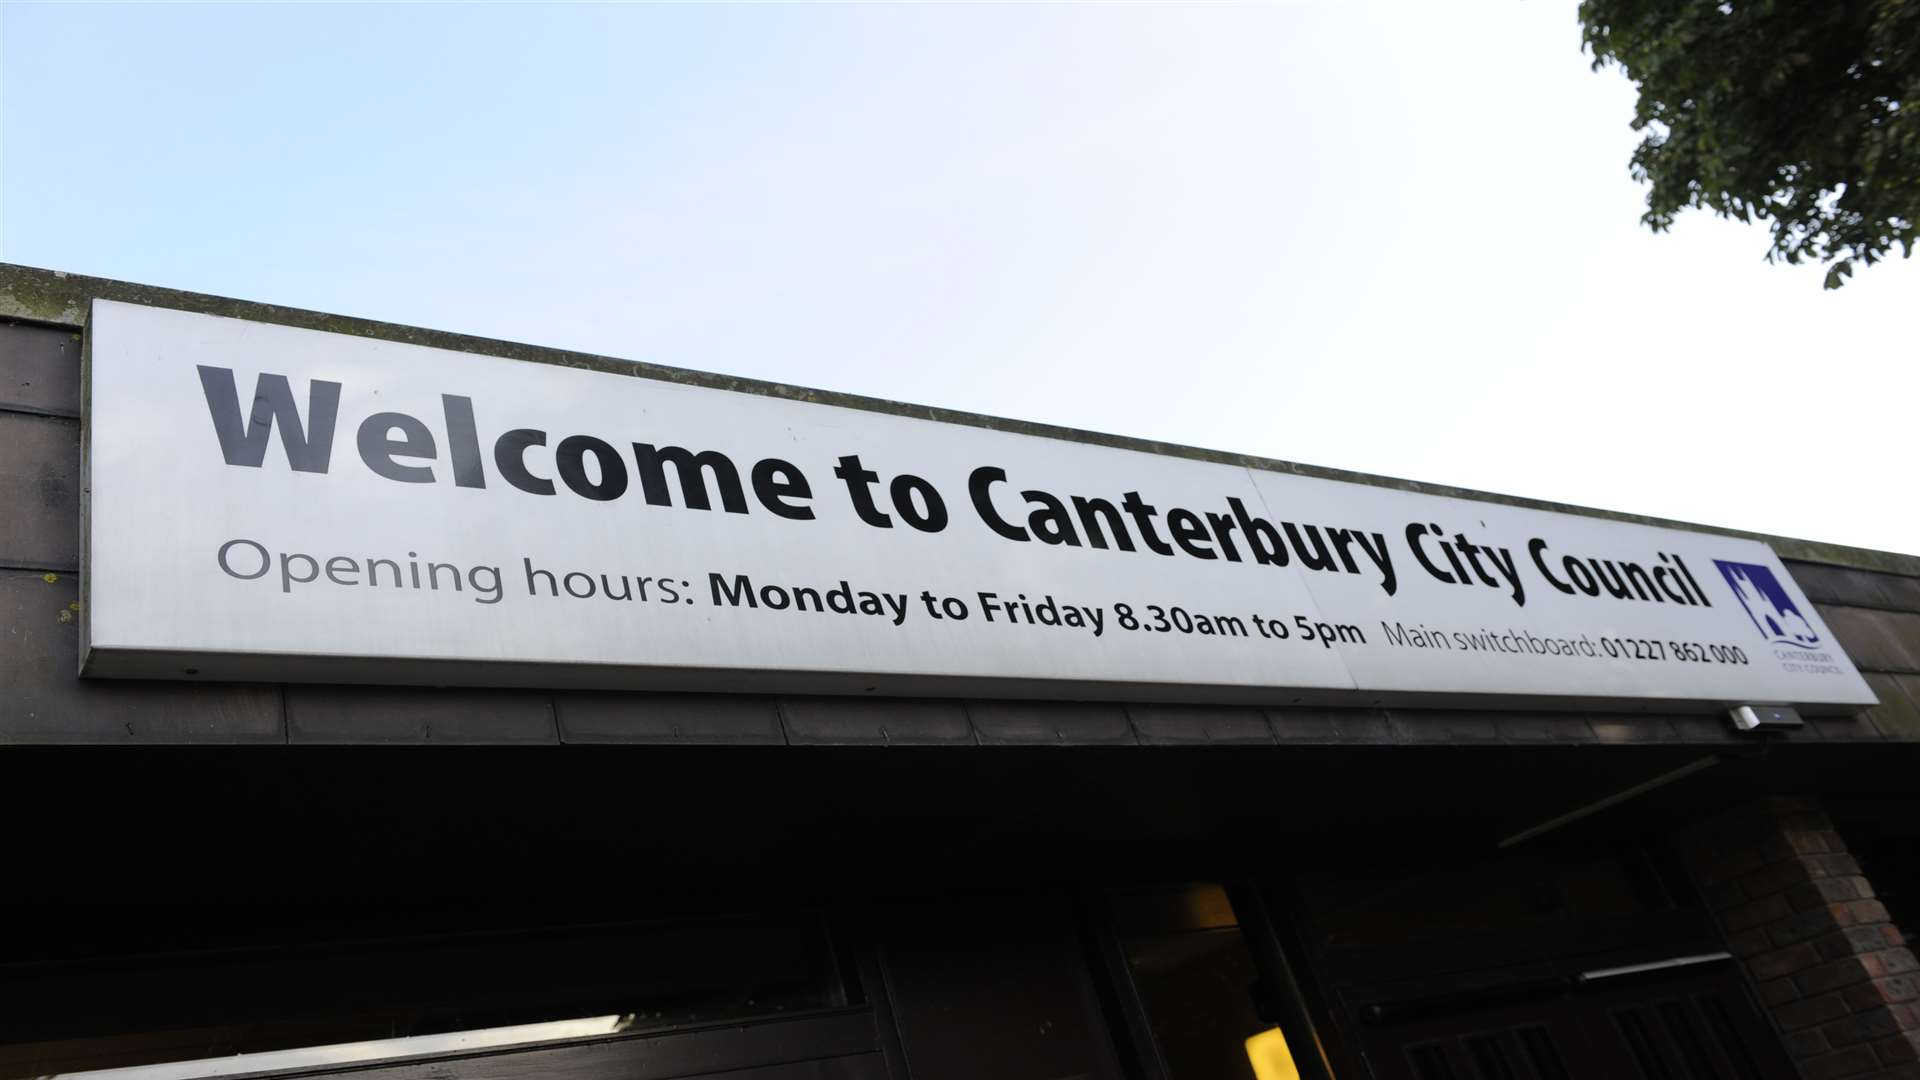 Canterbury council is one of five councils that could join forces. Picture: Tony Flashman